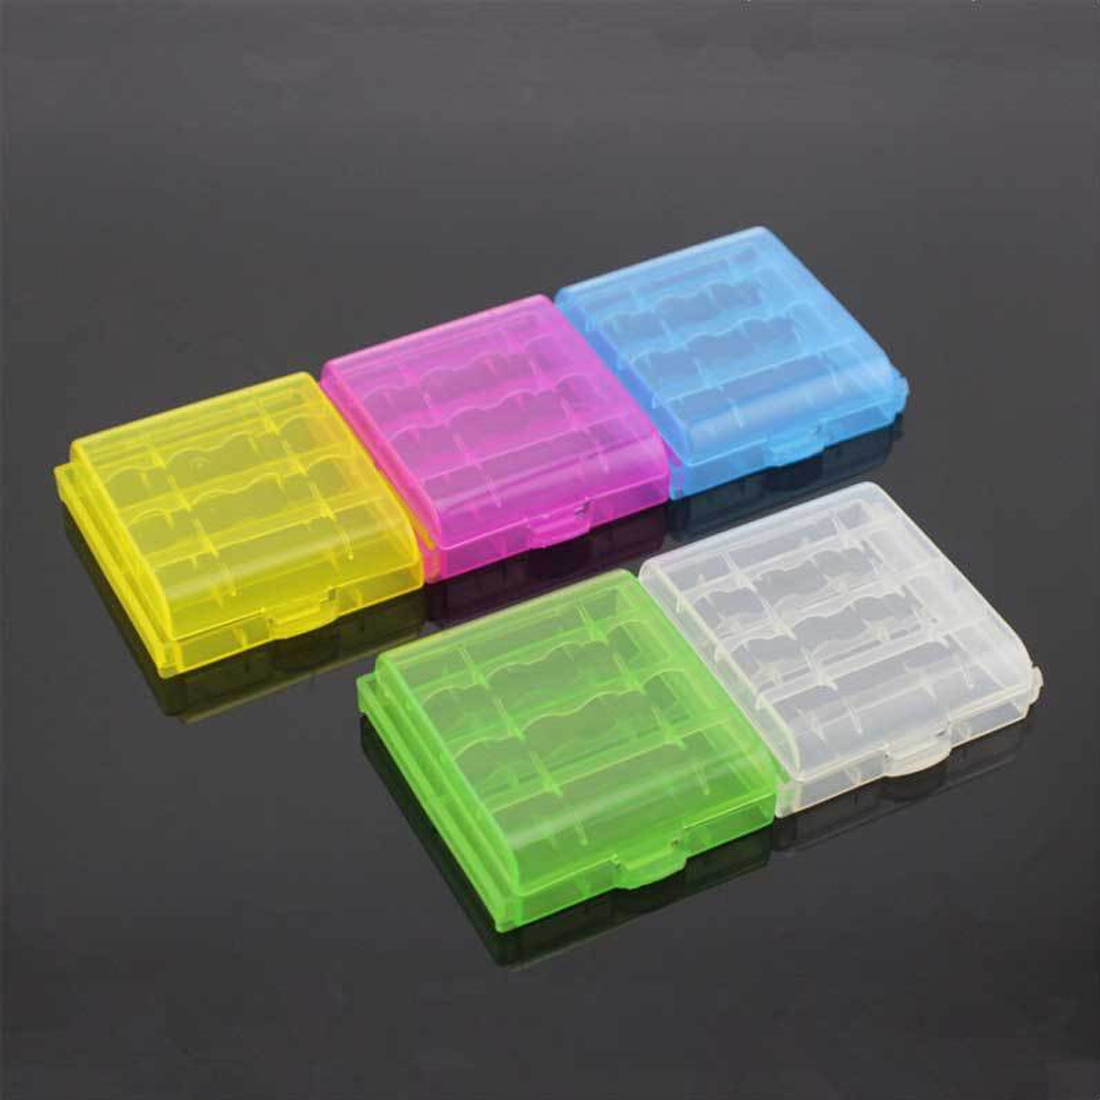 Centechia PRO 2Pcs/lot Mini Portable Plastic Battery Case Holder Storage Box For AAA/AA Battery Rechargeable Full Cover